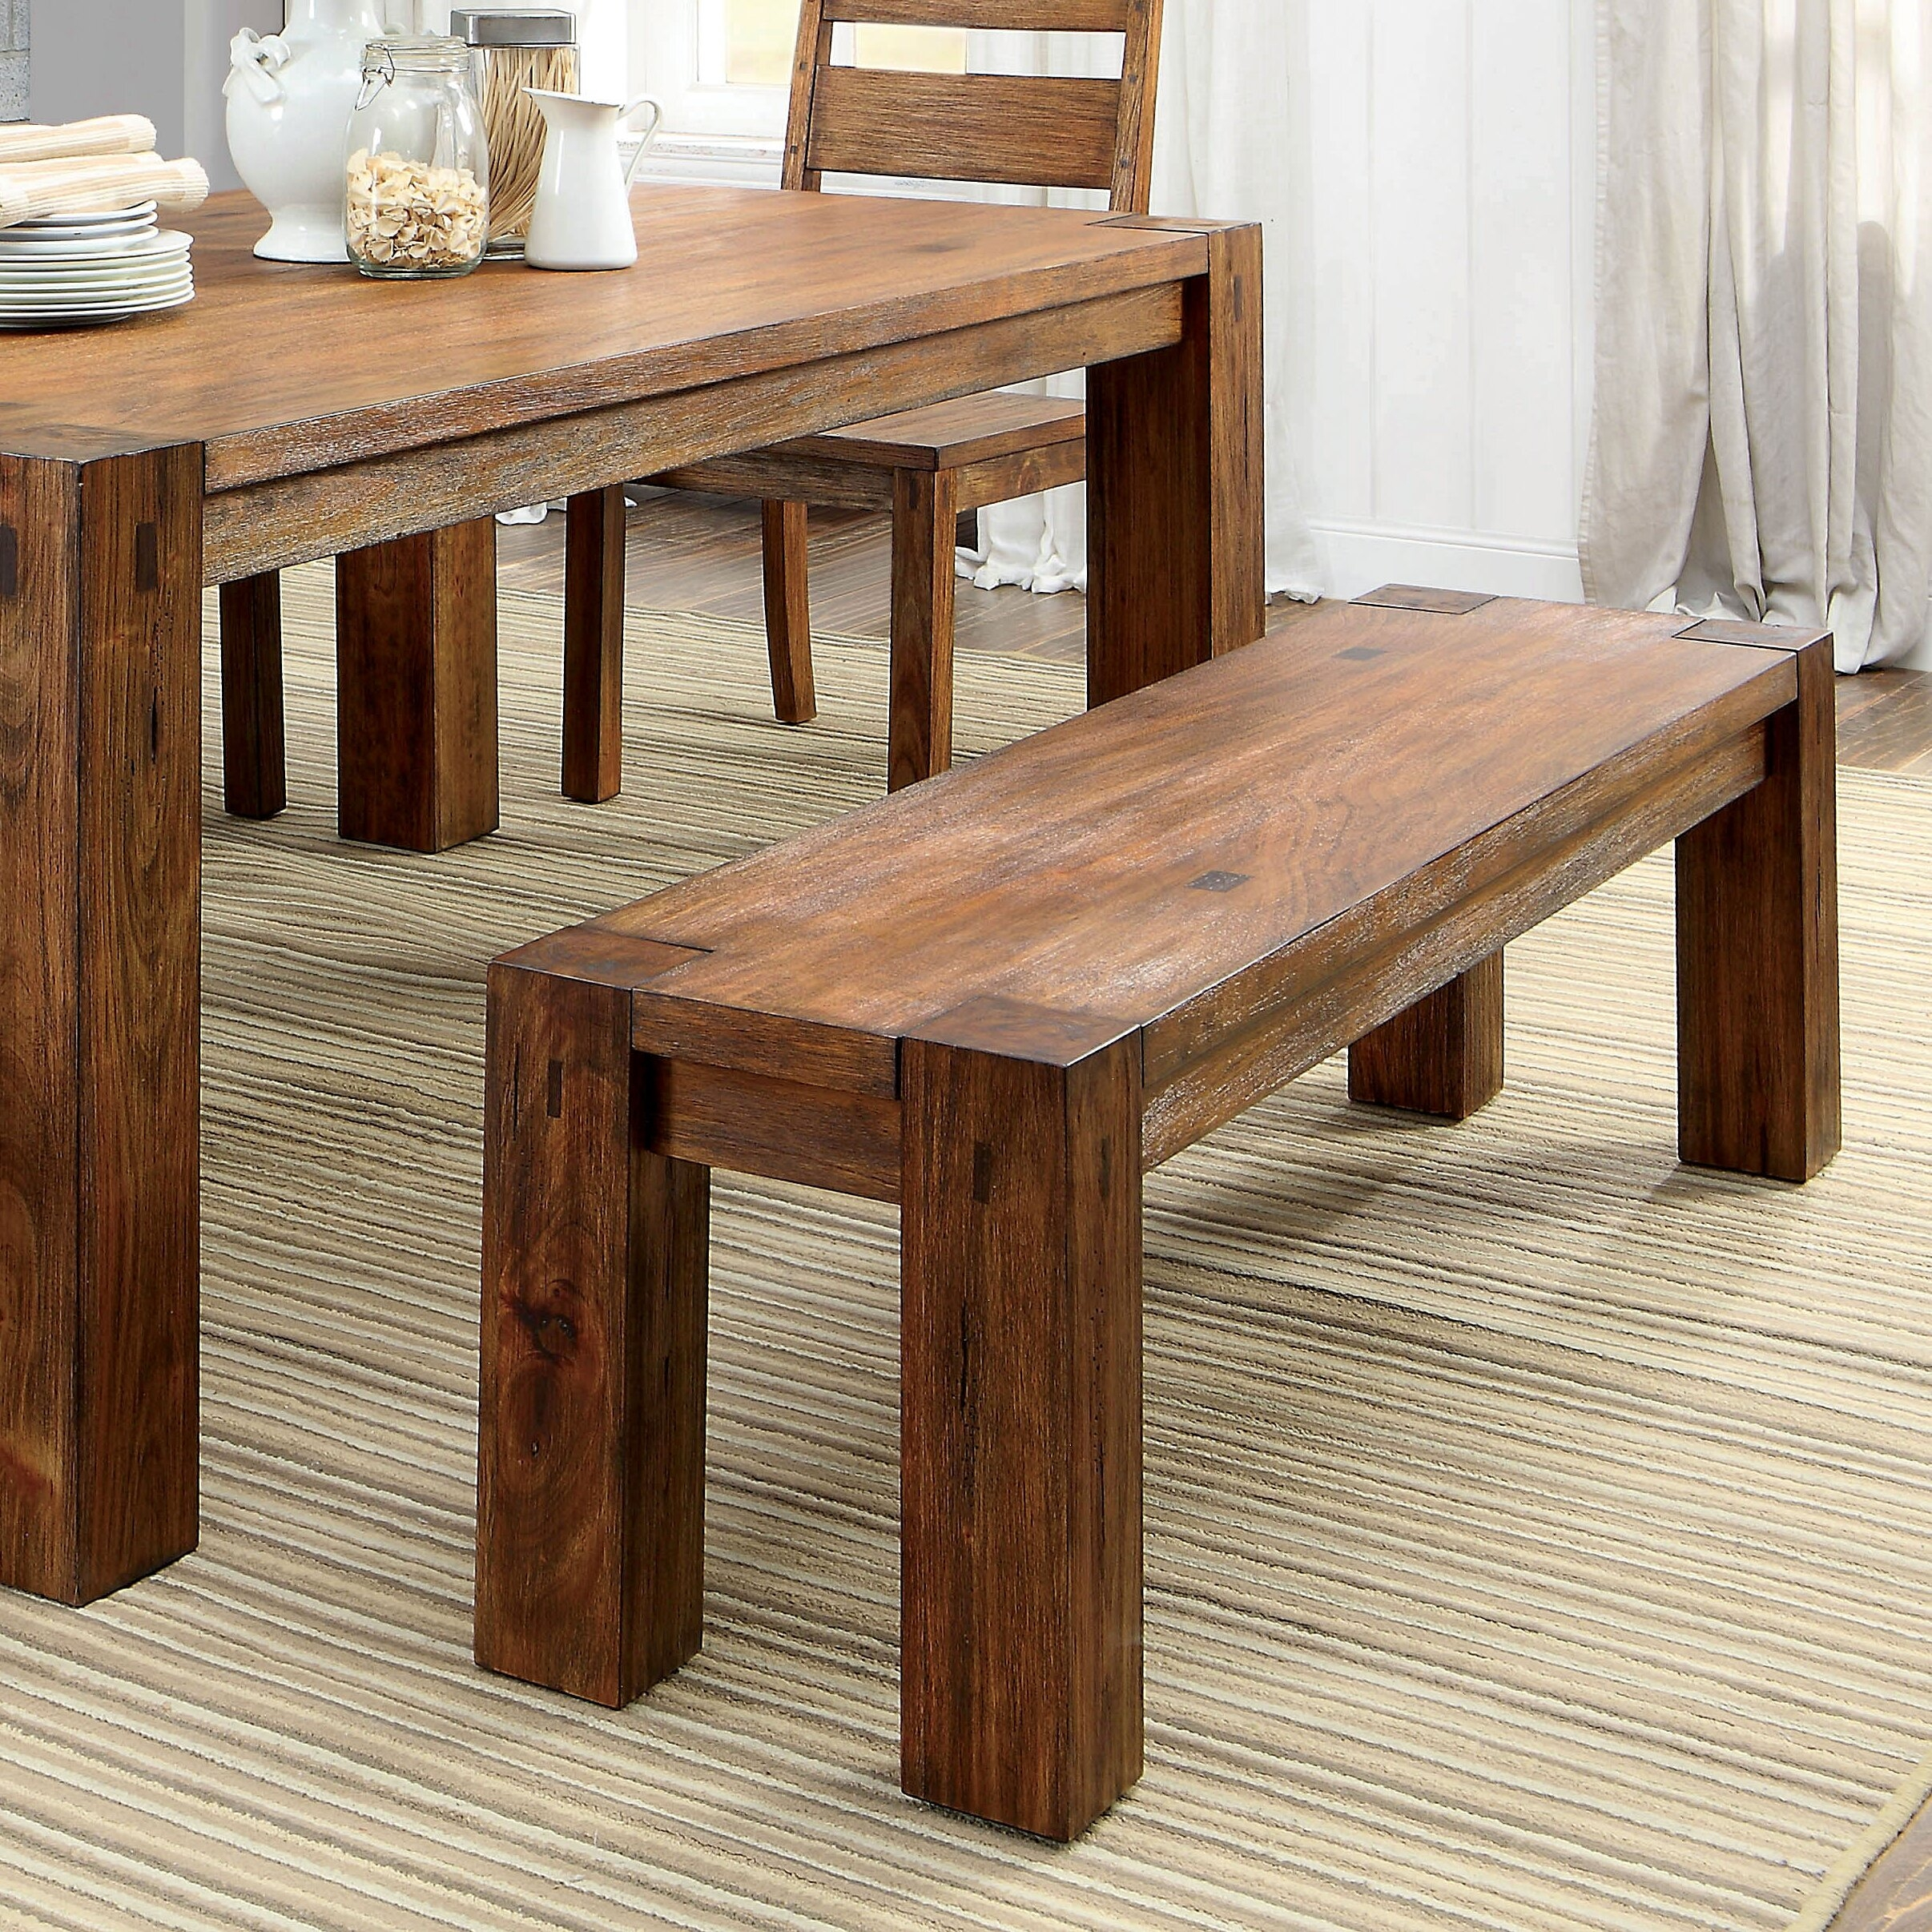 Awesome Bethanne Wood Kitchen Bench